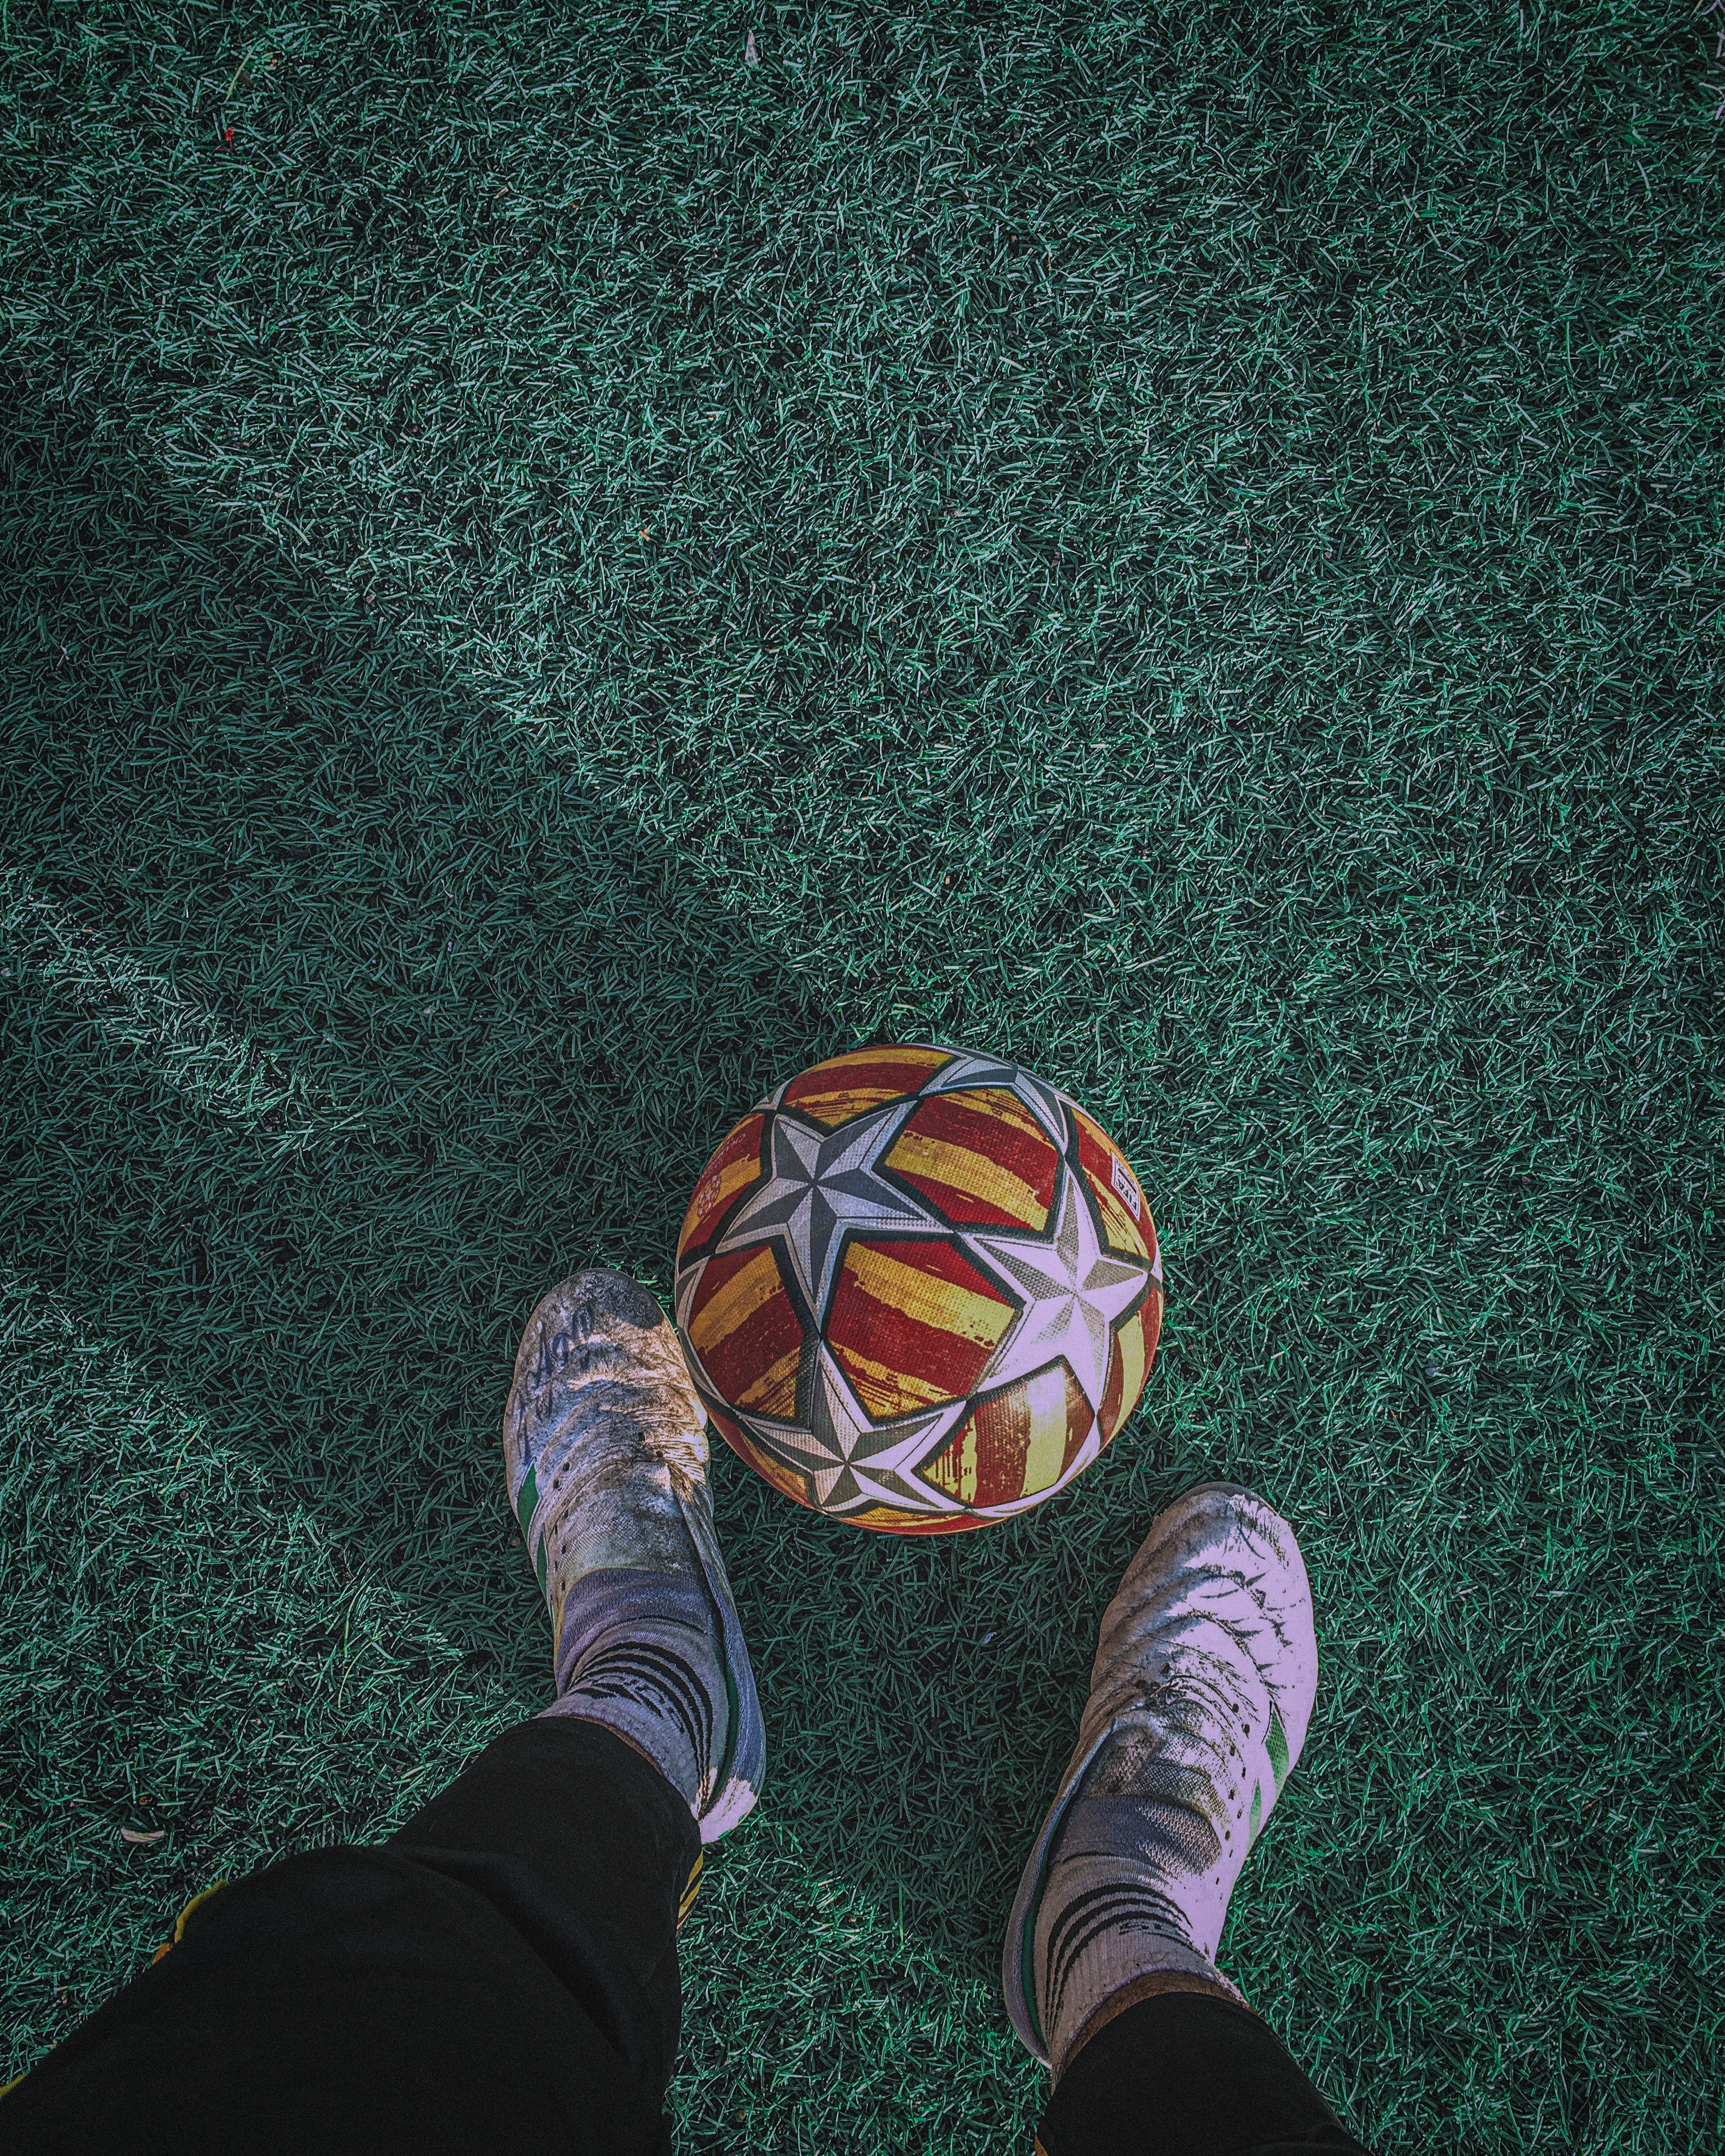 101436 download wallpaper Sports, Ball, Legs, Football, Lawn screensavers and pictures for free